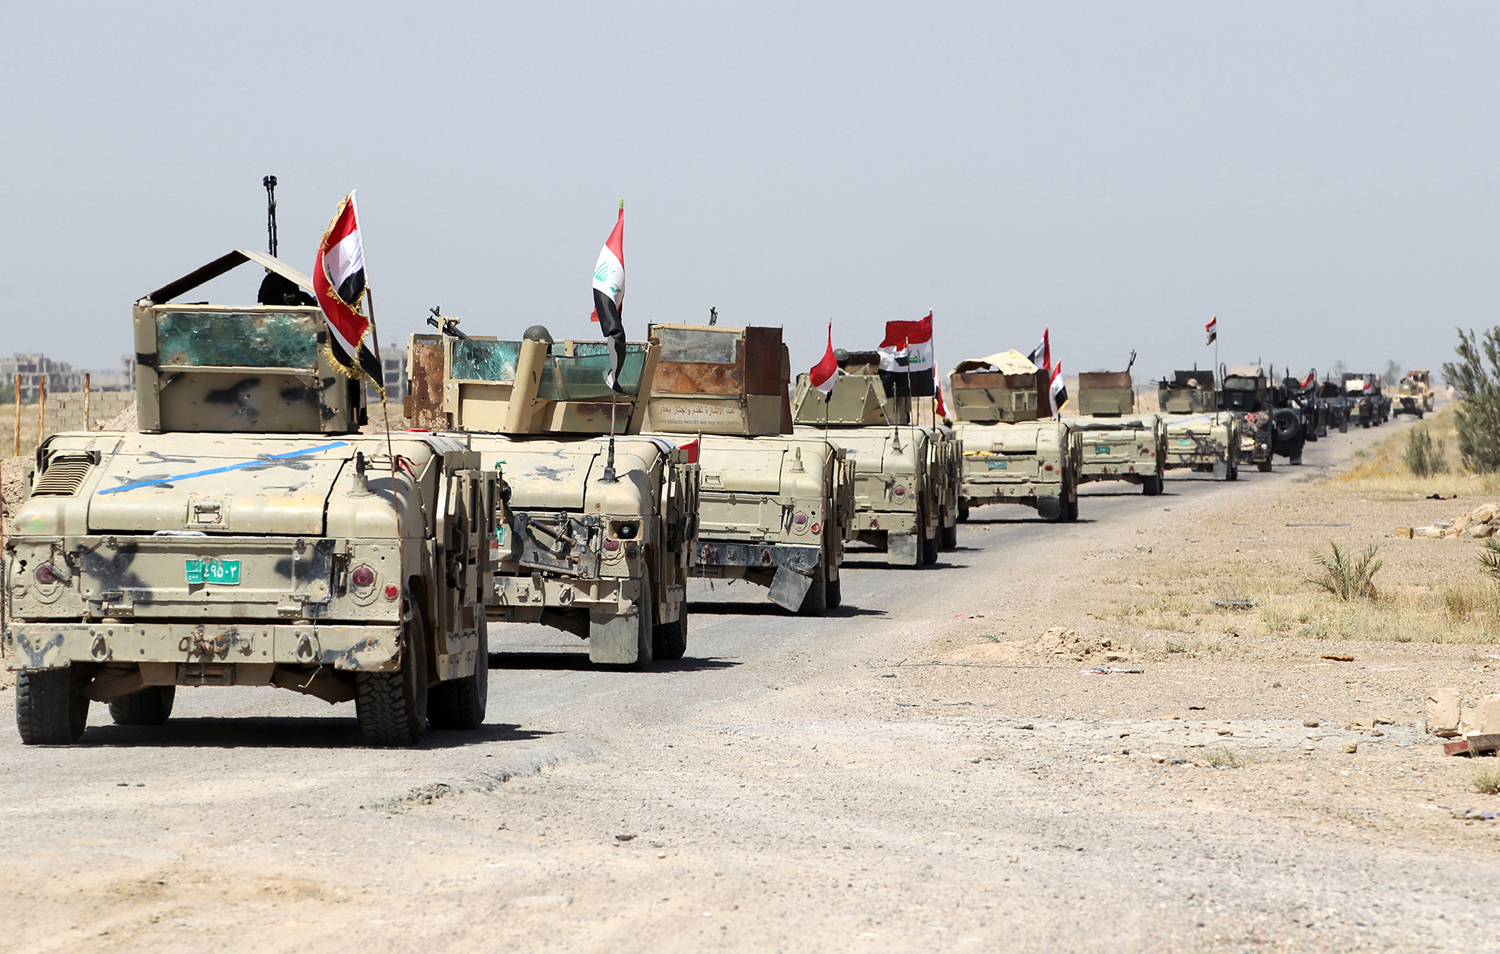 Iraqi government forces take a position outside al-Shuhada neighborhood, south of Fallujah, during an operation to regain control of the area from the Islamic State group on June 3, 2016. Iraqi forces on May 22-23 launched a vast offensive aimed at retaking the IS bastion of Fallujah, a city only 50 kilometres (30 miles) west of Baghdad that was the first to fall out of government control in 2014. / AFP / AHMAD AL-RUBAYE (Photo credit should read AHMAD AL-RUBAYE/AFP/Getty Images)